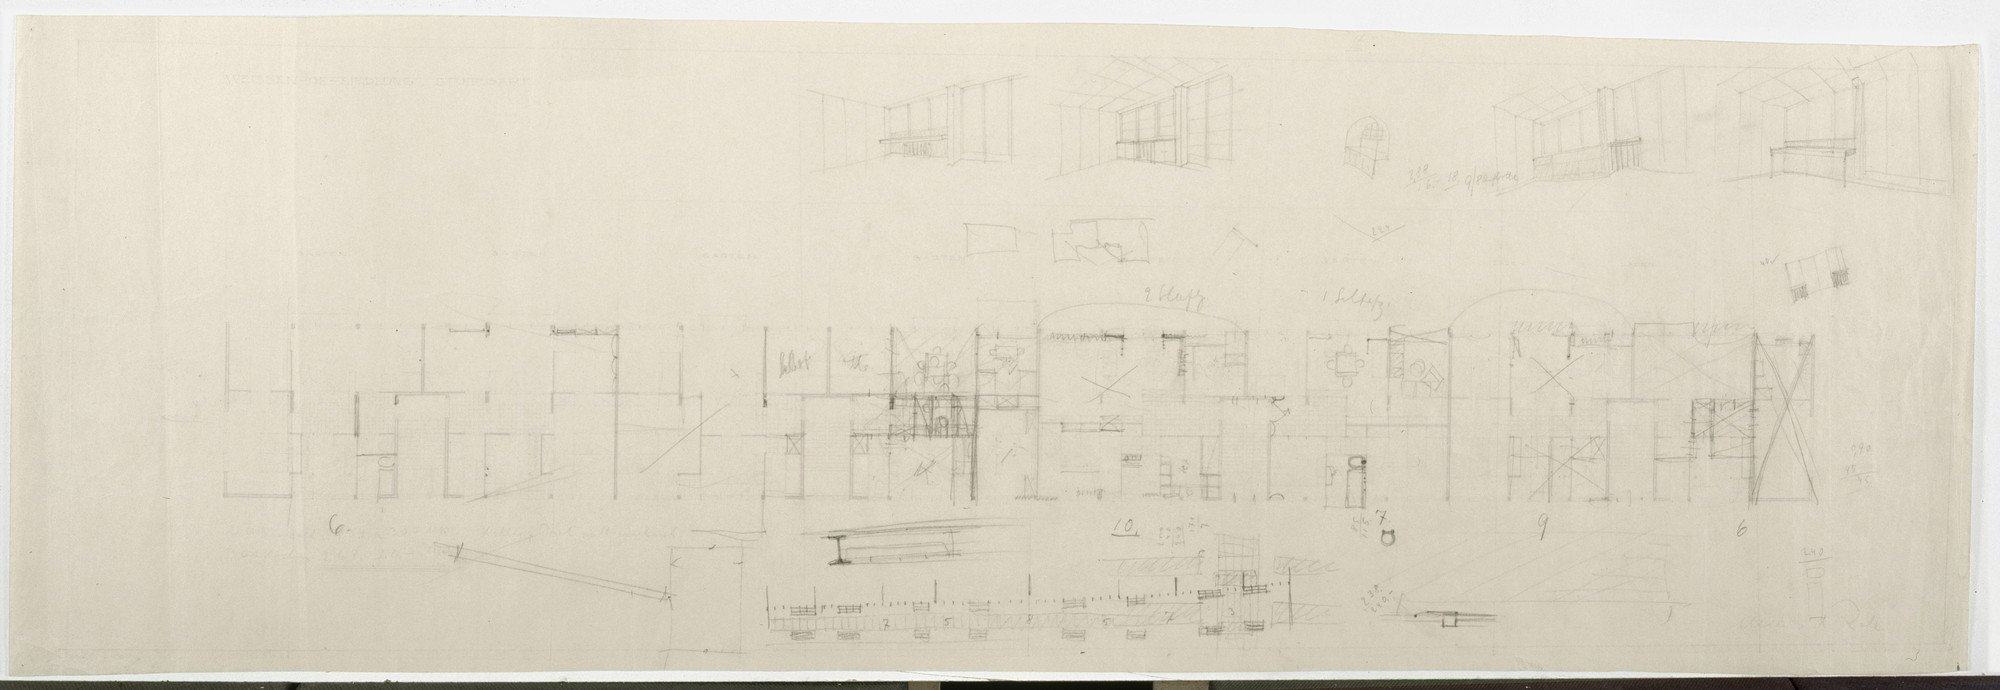 "Ludwig Mies van der Rohe. Weissenhof Apartment House, ""The Dwelling"" Exhibition, Stuttgart, Germany (Upper floor plan, interior perspectives). 1926"